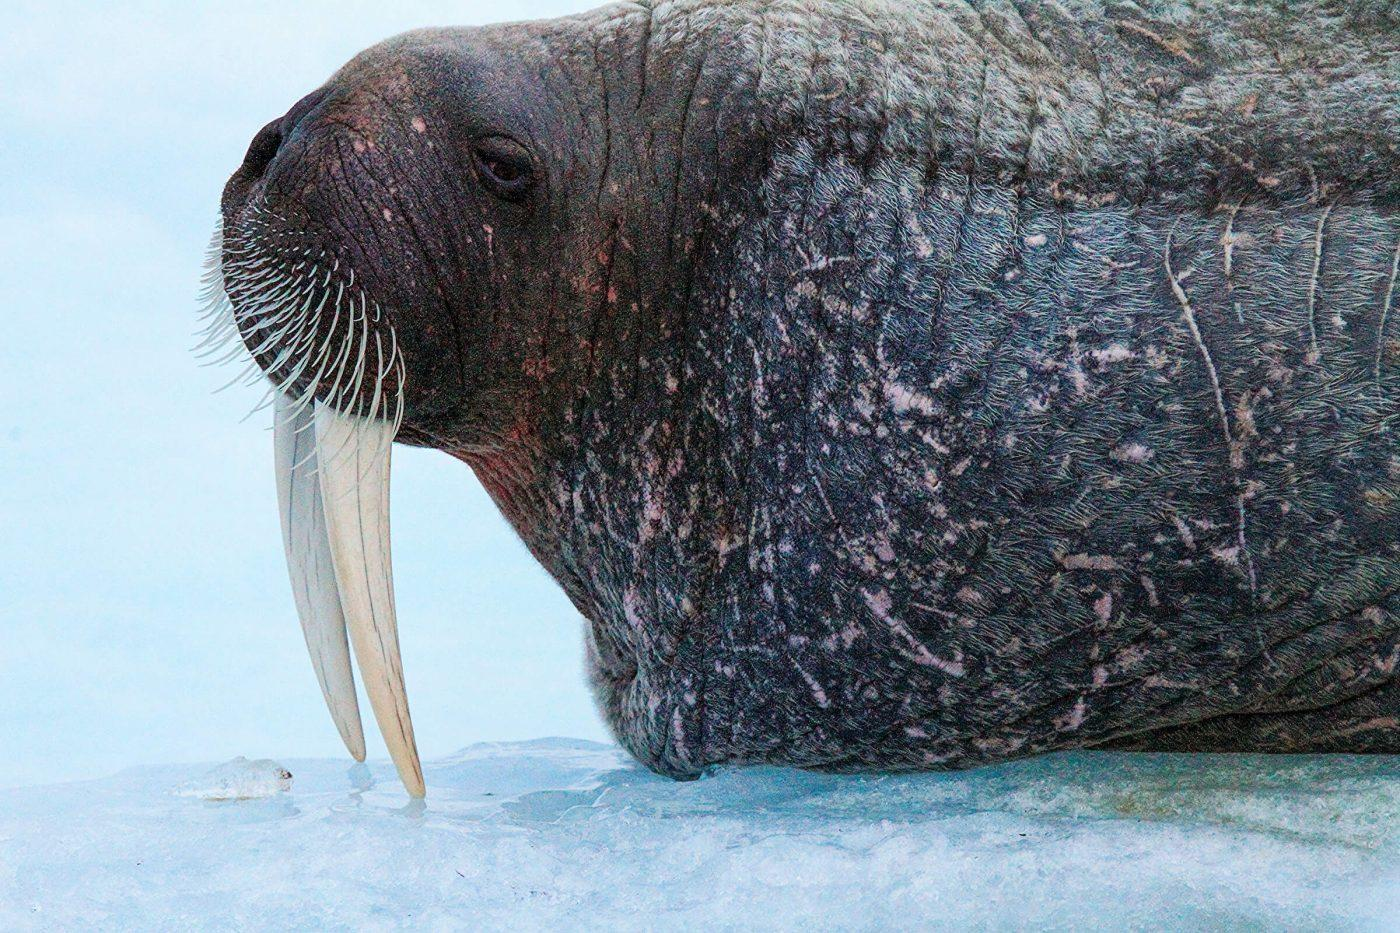 Walrus on ice floe. Photo by Aqqa Rosing Asvid.